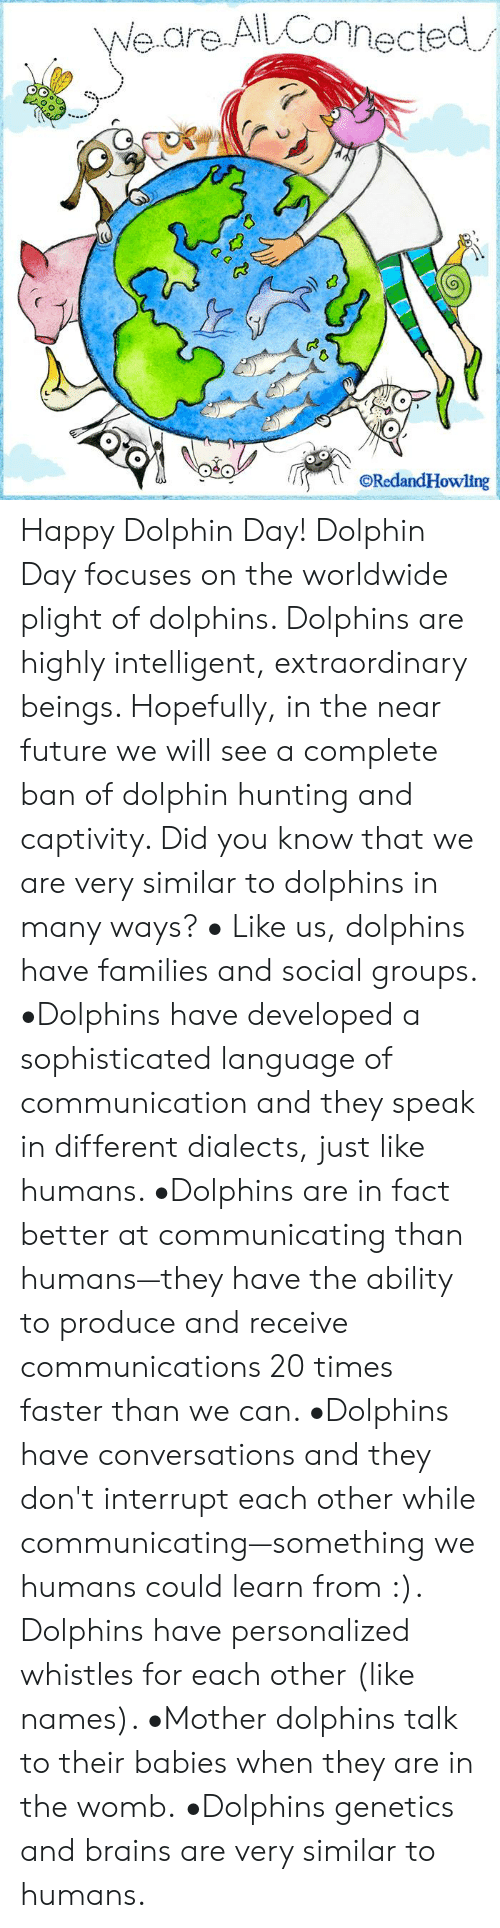 Brains, Future, and Memes: Weare AlLConnected  ORedandHowling Happy Dolphin Day!   Dolphin Day focuses on the worldwide plight of dolphins.  Dolphins are highly intelligent, extraordinary beings. Hopefully, in the near future we will see a complete ban of dolphin hunting and captivity.    Did you know that we are very similar to dolphins in many ways?    • Like us, dolphins have families and social groups.   •Dolphins have developed a sophisticated language of communication and they speak in different dialects, just like humans.    •Dolphins are in fact better at communicating than humans—they have the ability to produce and receive communications 20 times faster than we can.    •Dolphins have conversations and they don't interrupt each other while communicating—something we humans could learn from :).   Dolphins have personalized whistles for each other (like names).    •Mother dolphins talk to their babies when they are in the womb.  •Dolphins genetics and brains are very similar to humans.